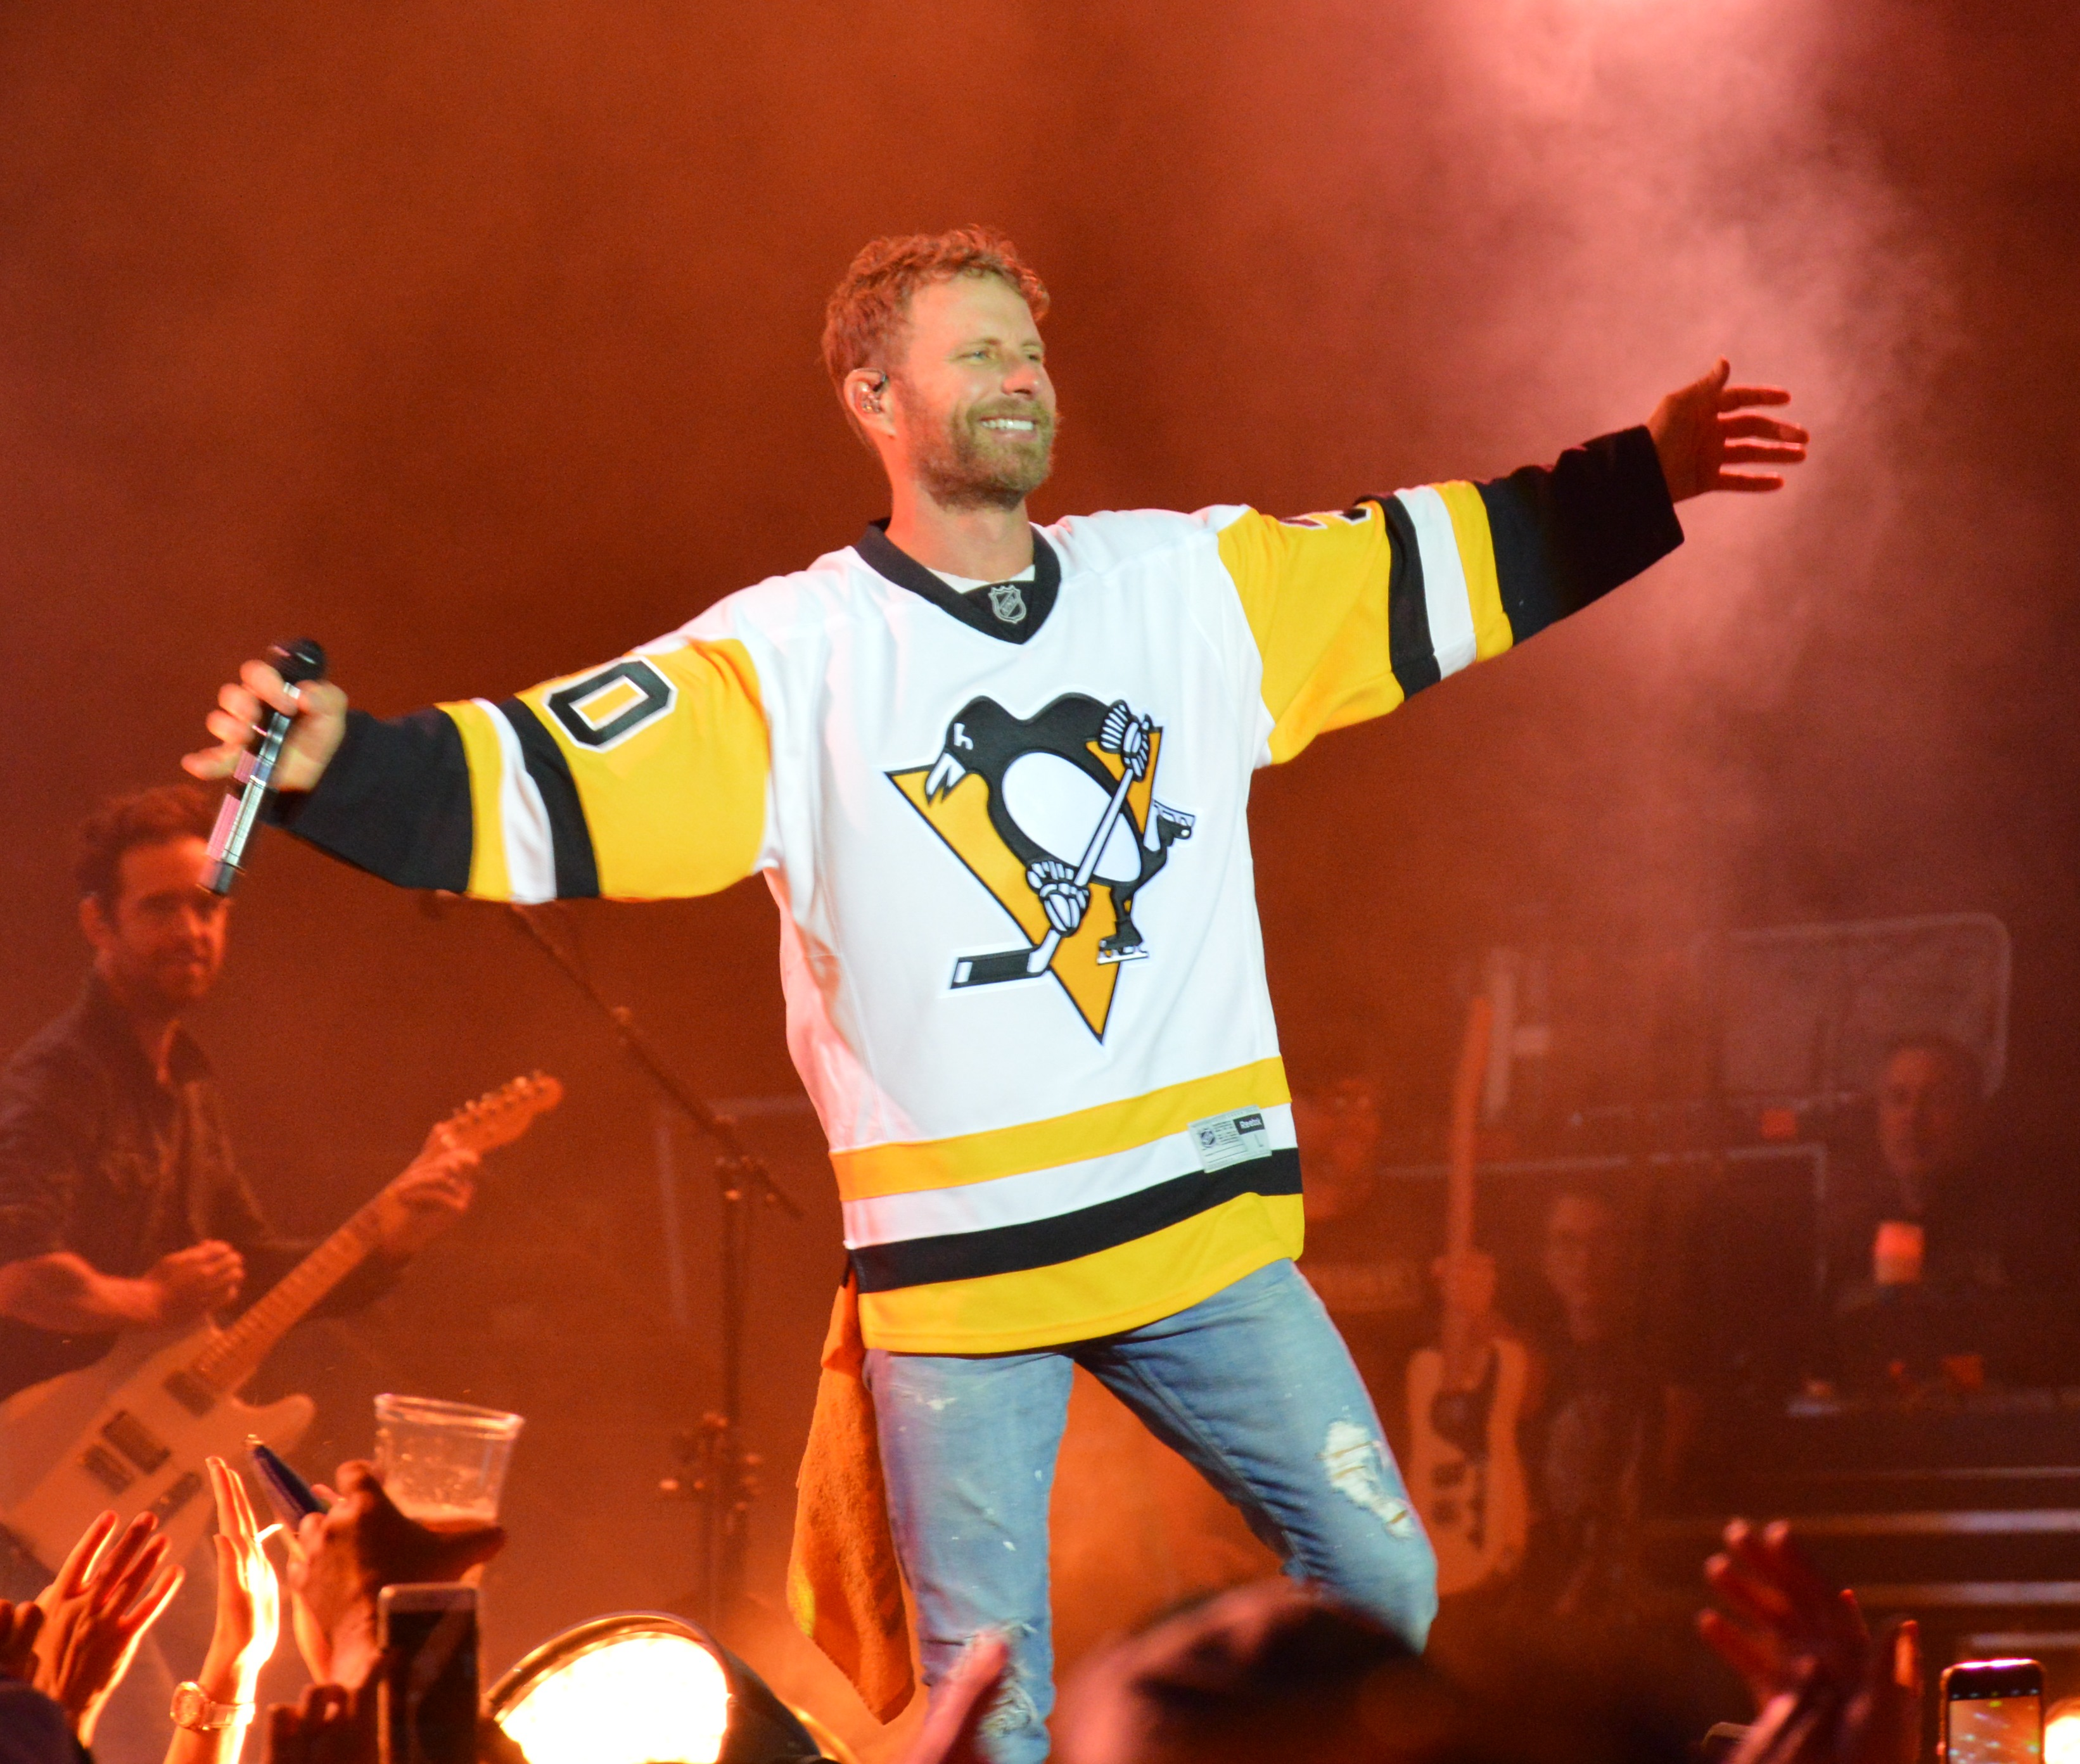 attend stars dierks loses bentley bet wears stanley penguins jersey pittsburgh onstage country final cup